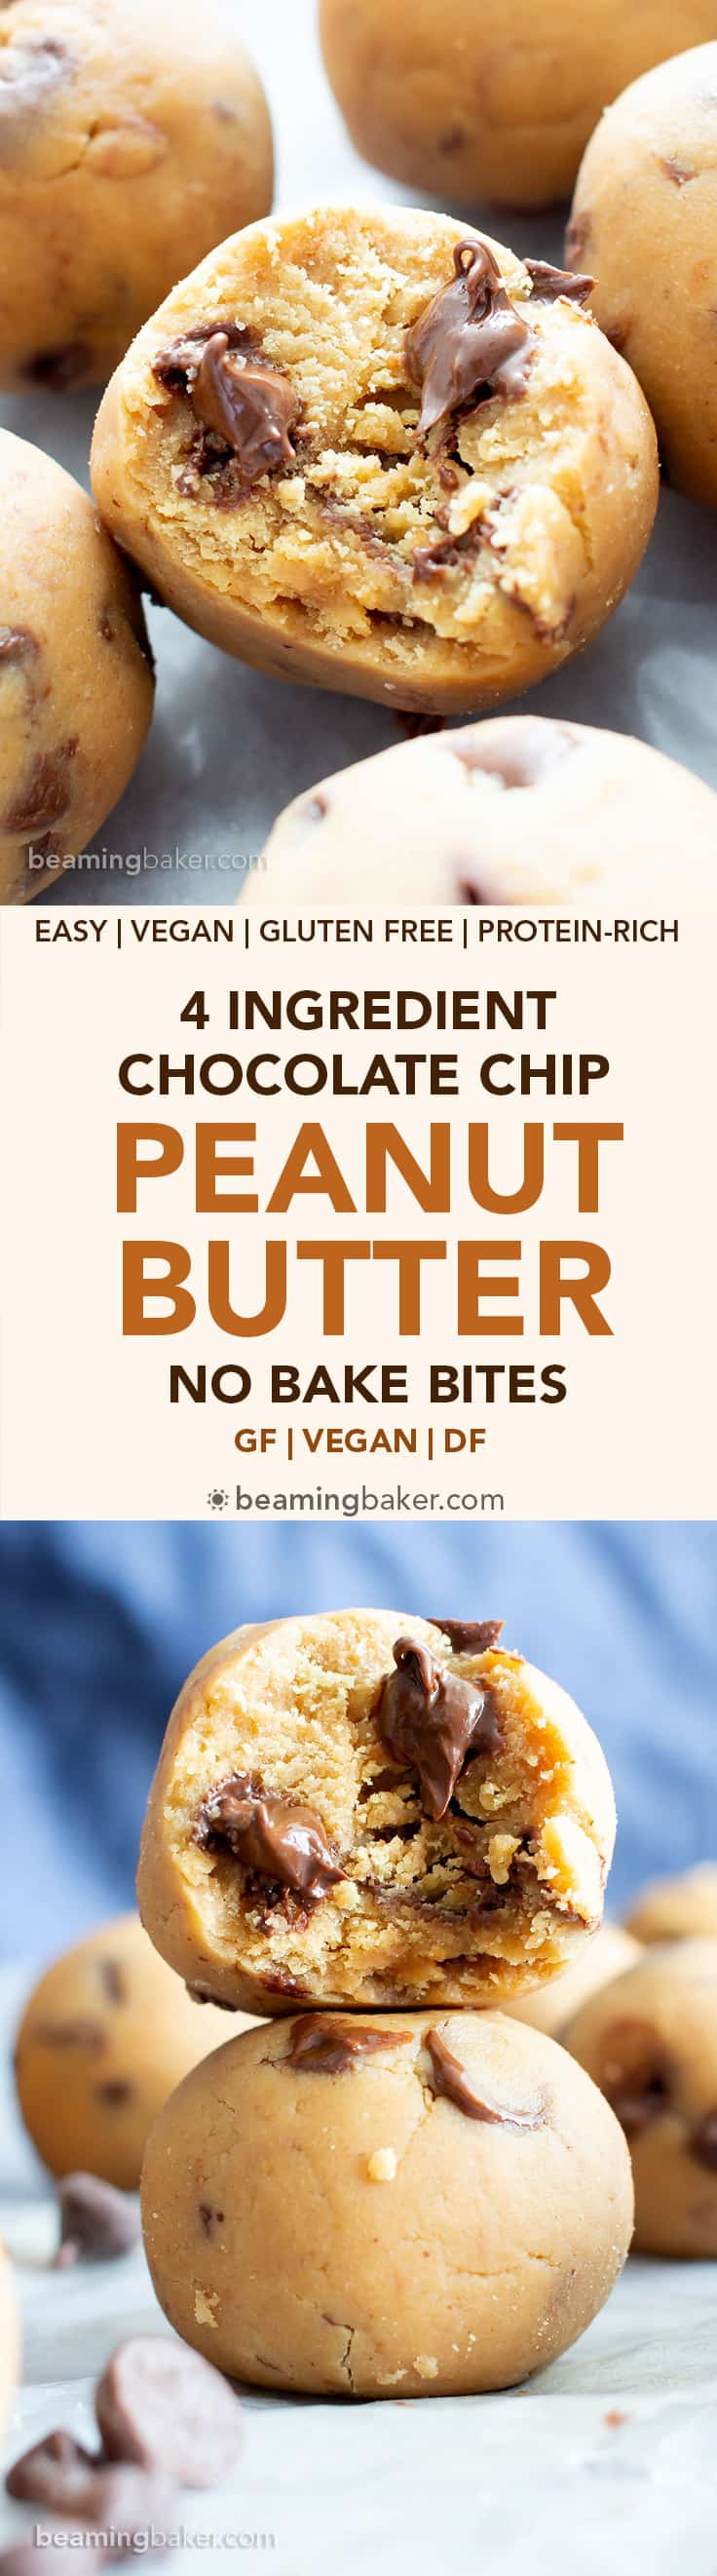 4 Ingredient Peanut Butter Chocolate Chip No Bake Energy Bites (V, GF): a one bowl recipe for easy gluten-free no bake energy bites that taste like dessert, but are actually a healthy snack! #Vegan #GlutenFree #DairyFree #PeanutButter #NoBake #Snacks | Recipe on BeamingBaker.com